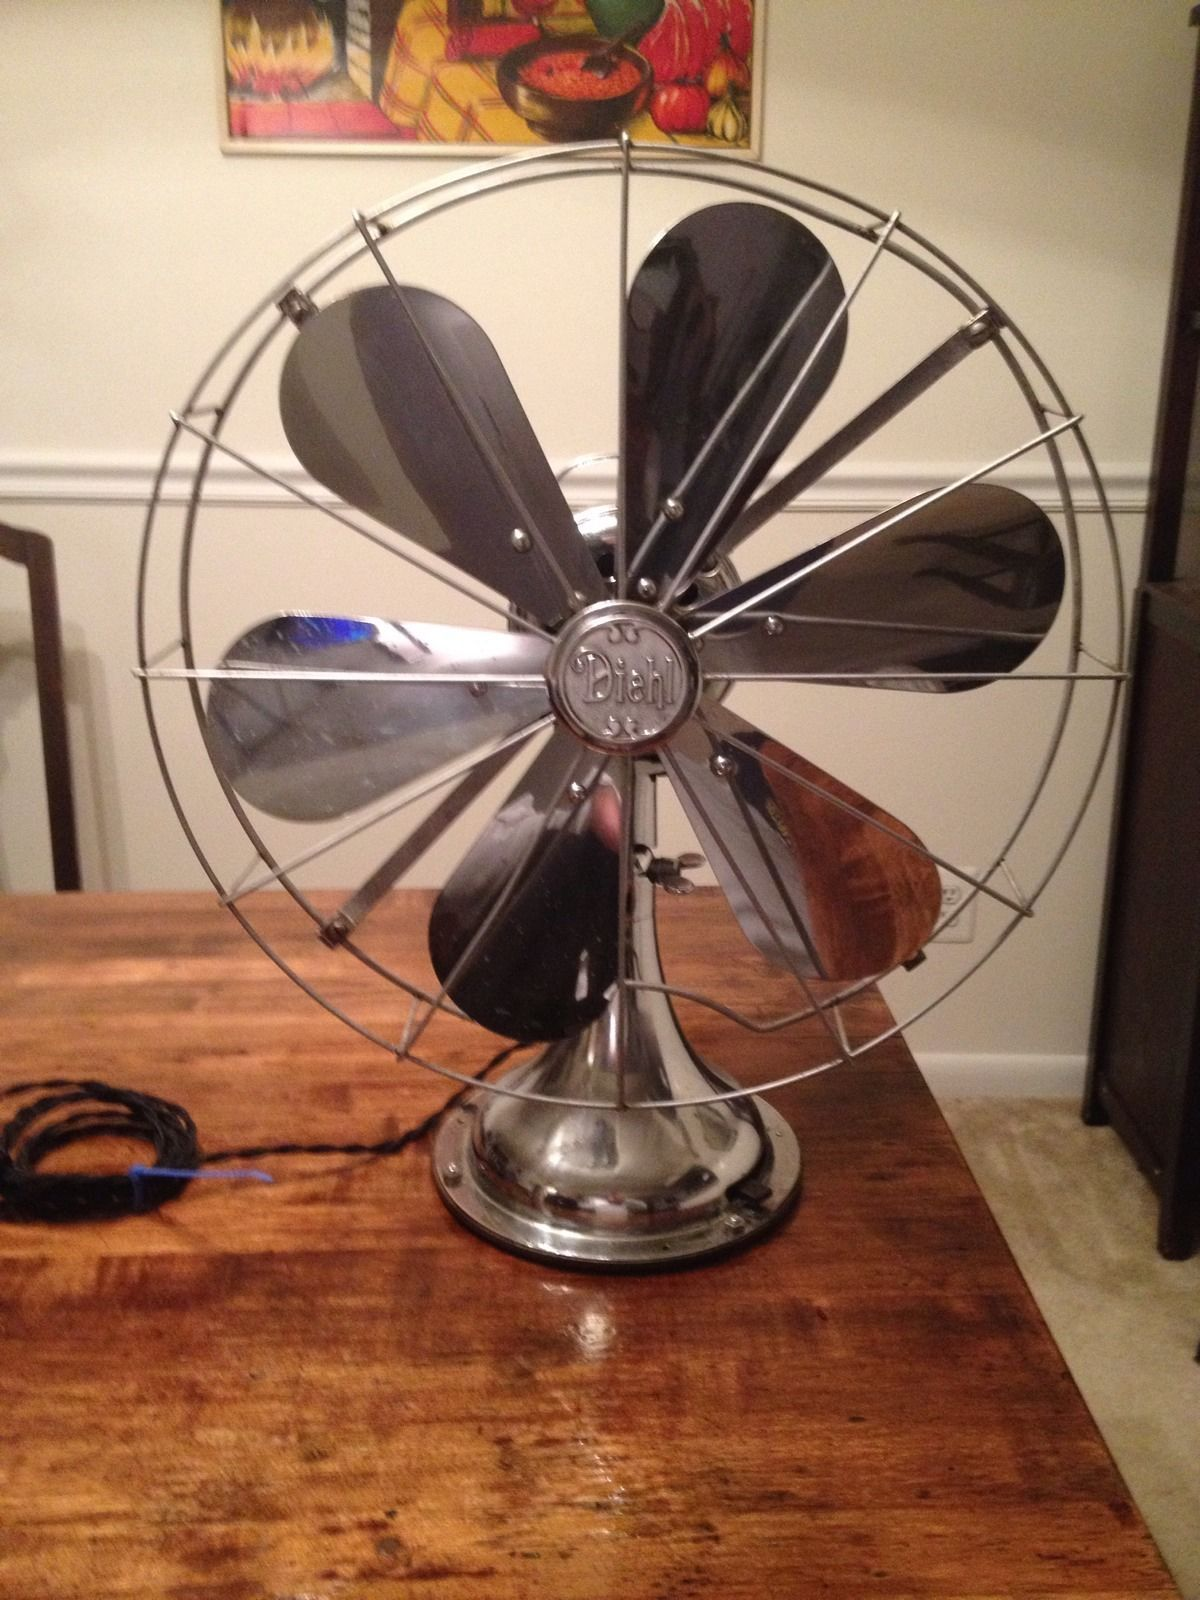 Vintage Looking Fan Vintage Diehl 6 Blade Chrome Electric Fan I Am Looking To Buy One